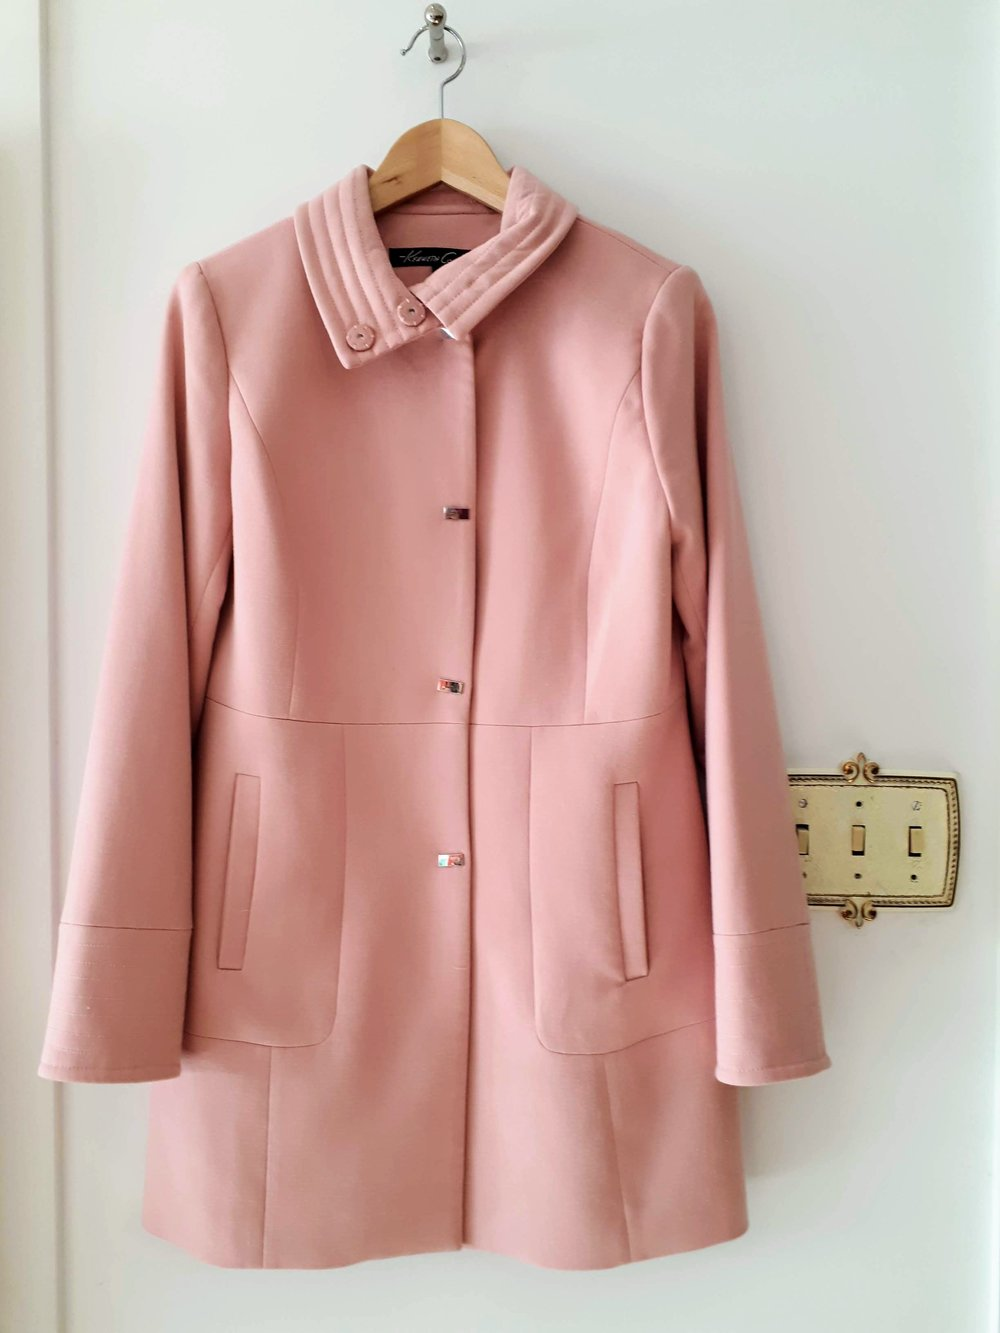 Kenneth Cole coat; Size S, $62